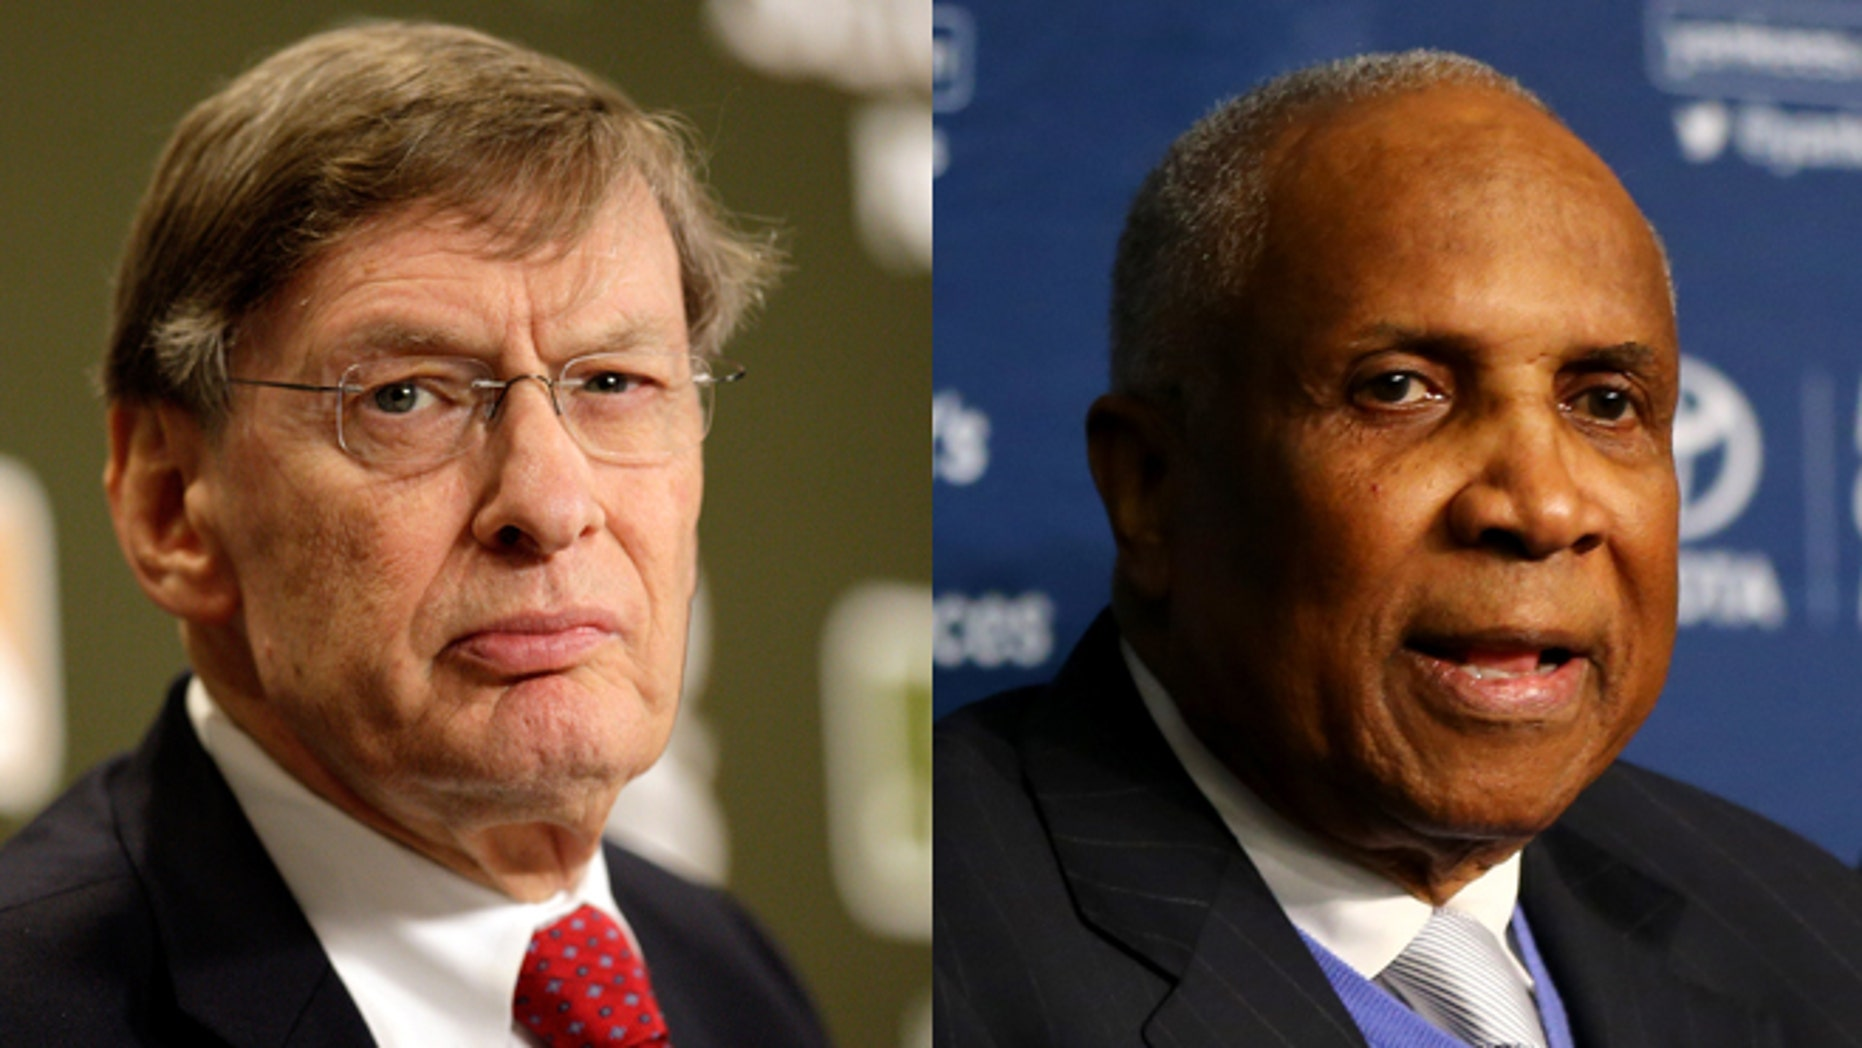 Bud Selig (left) and Frank Robinson. (Photos: Getty)